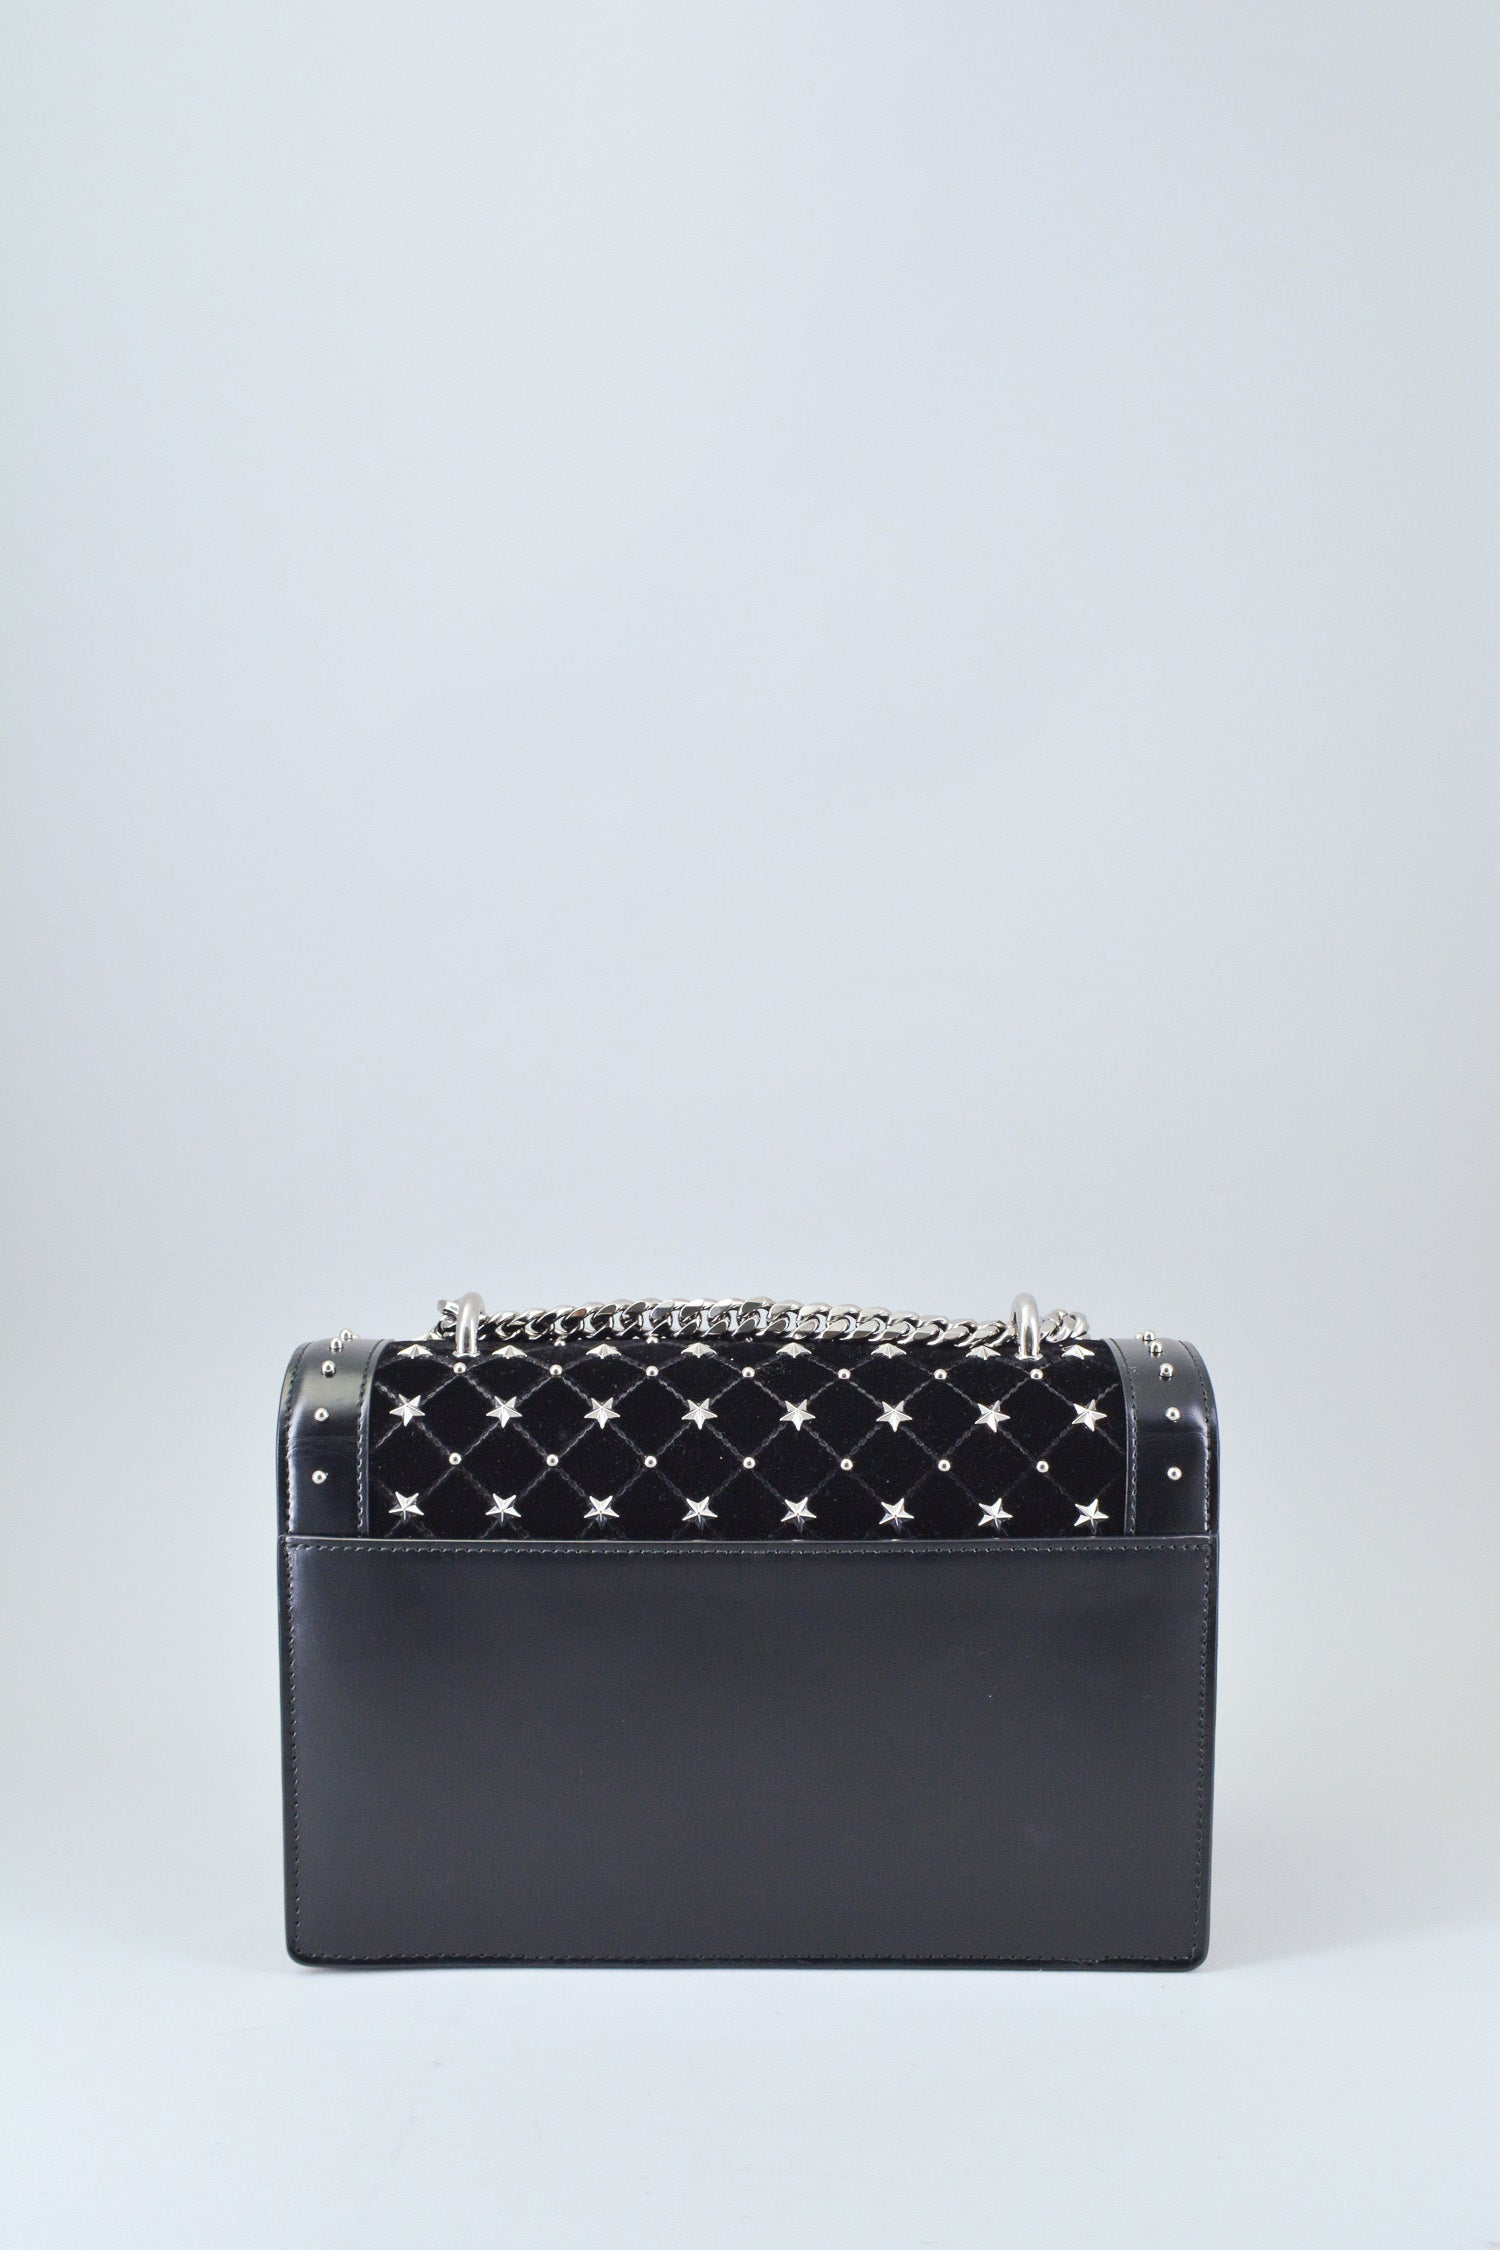 Balmain Black Velvet Studded Box Bag